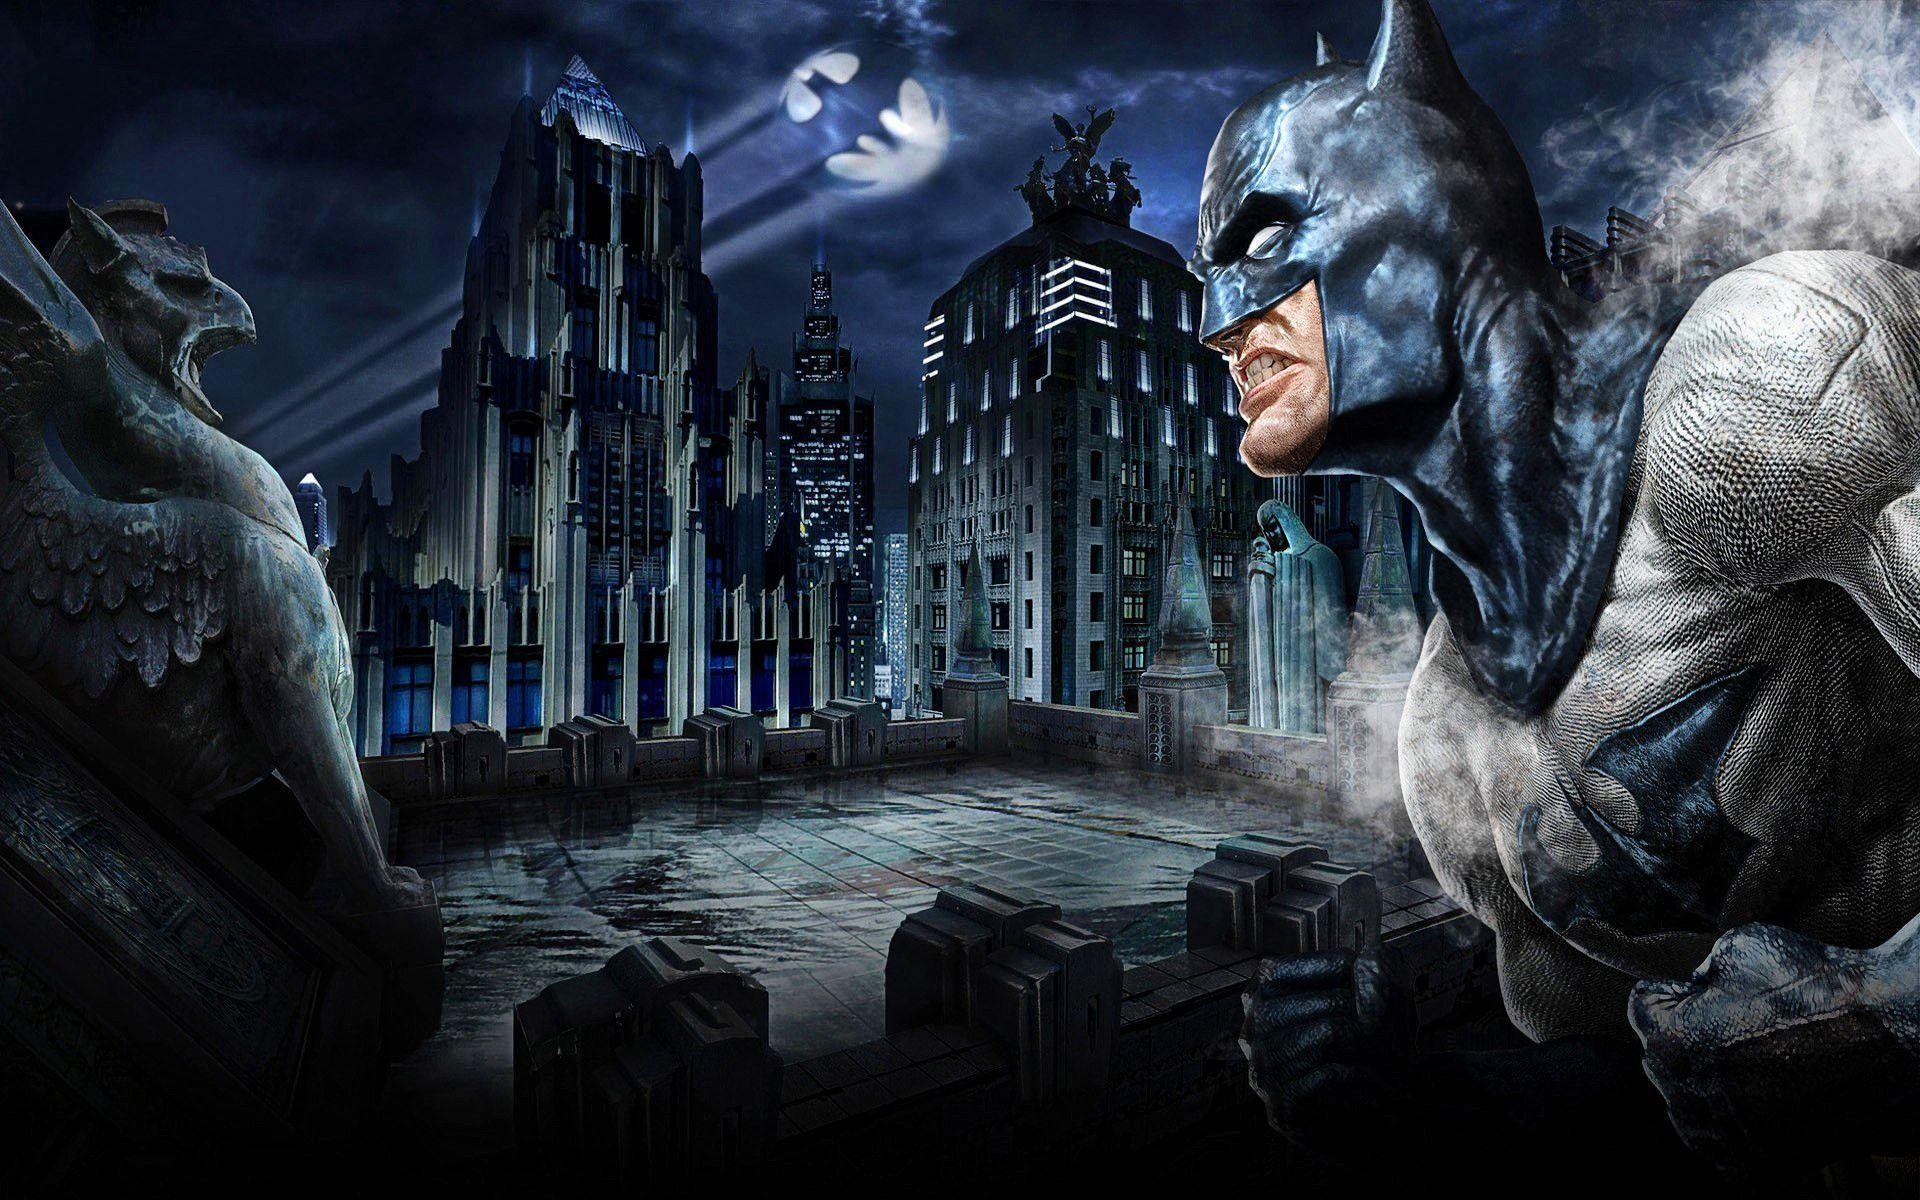 Batman Gotham City Background Wallpaper 26969 Hi-Resolution | Best ...